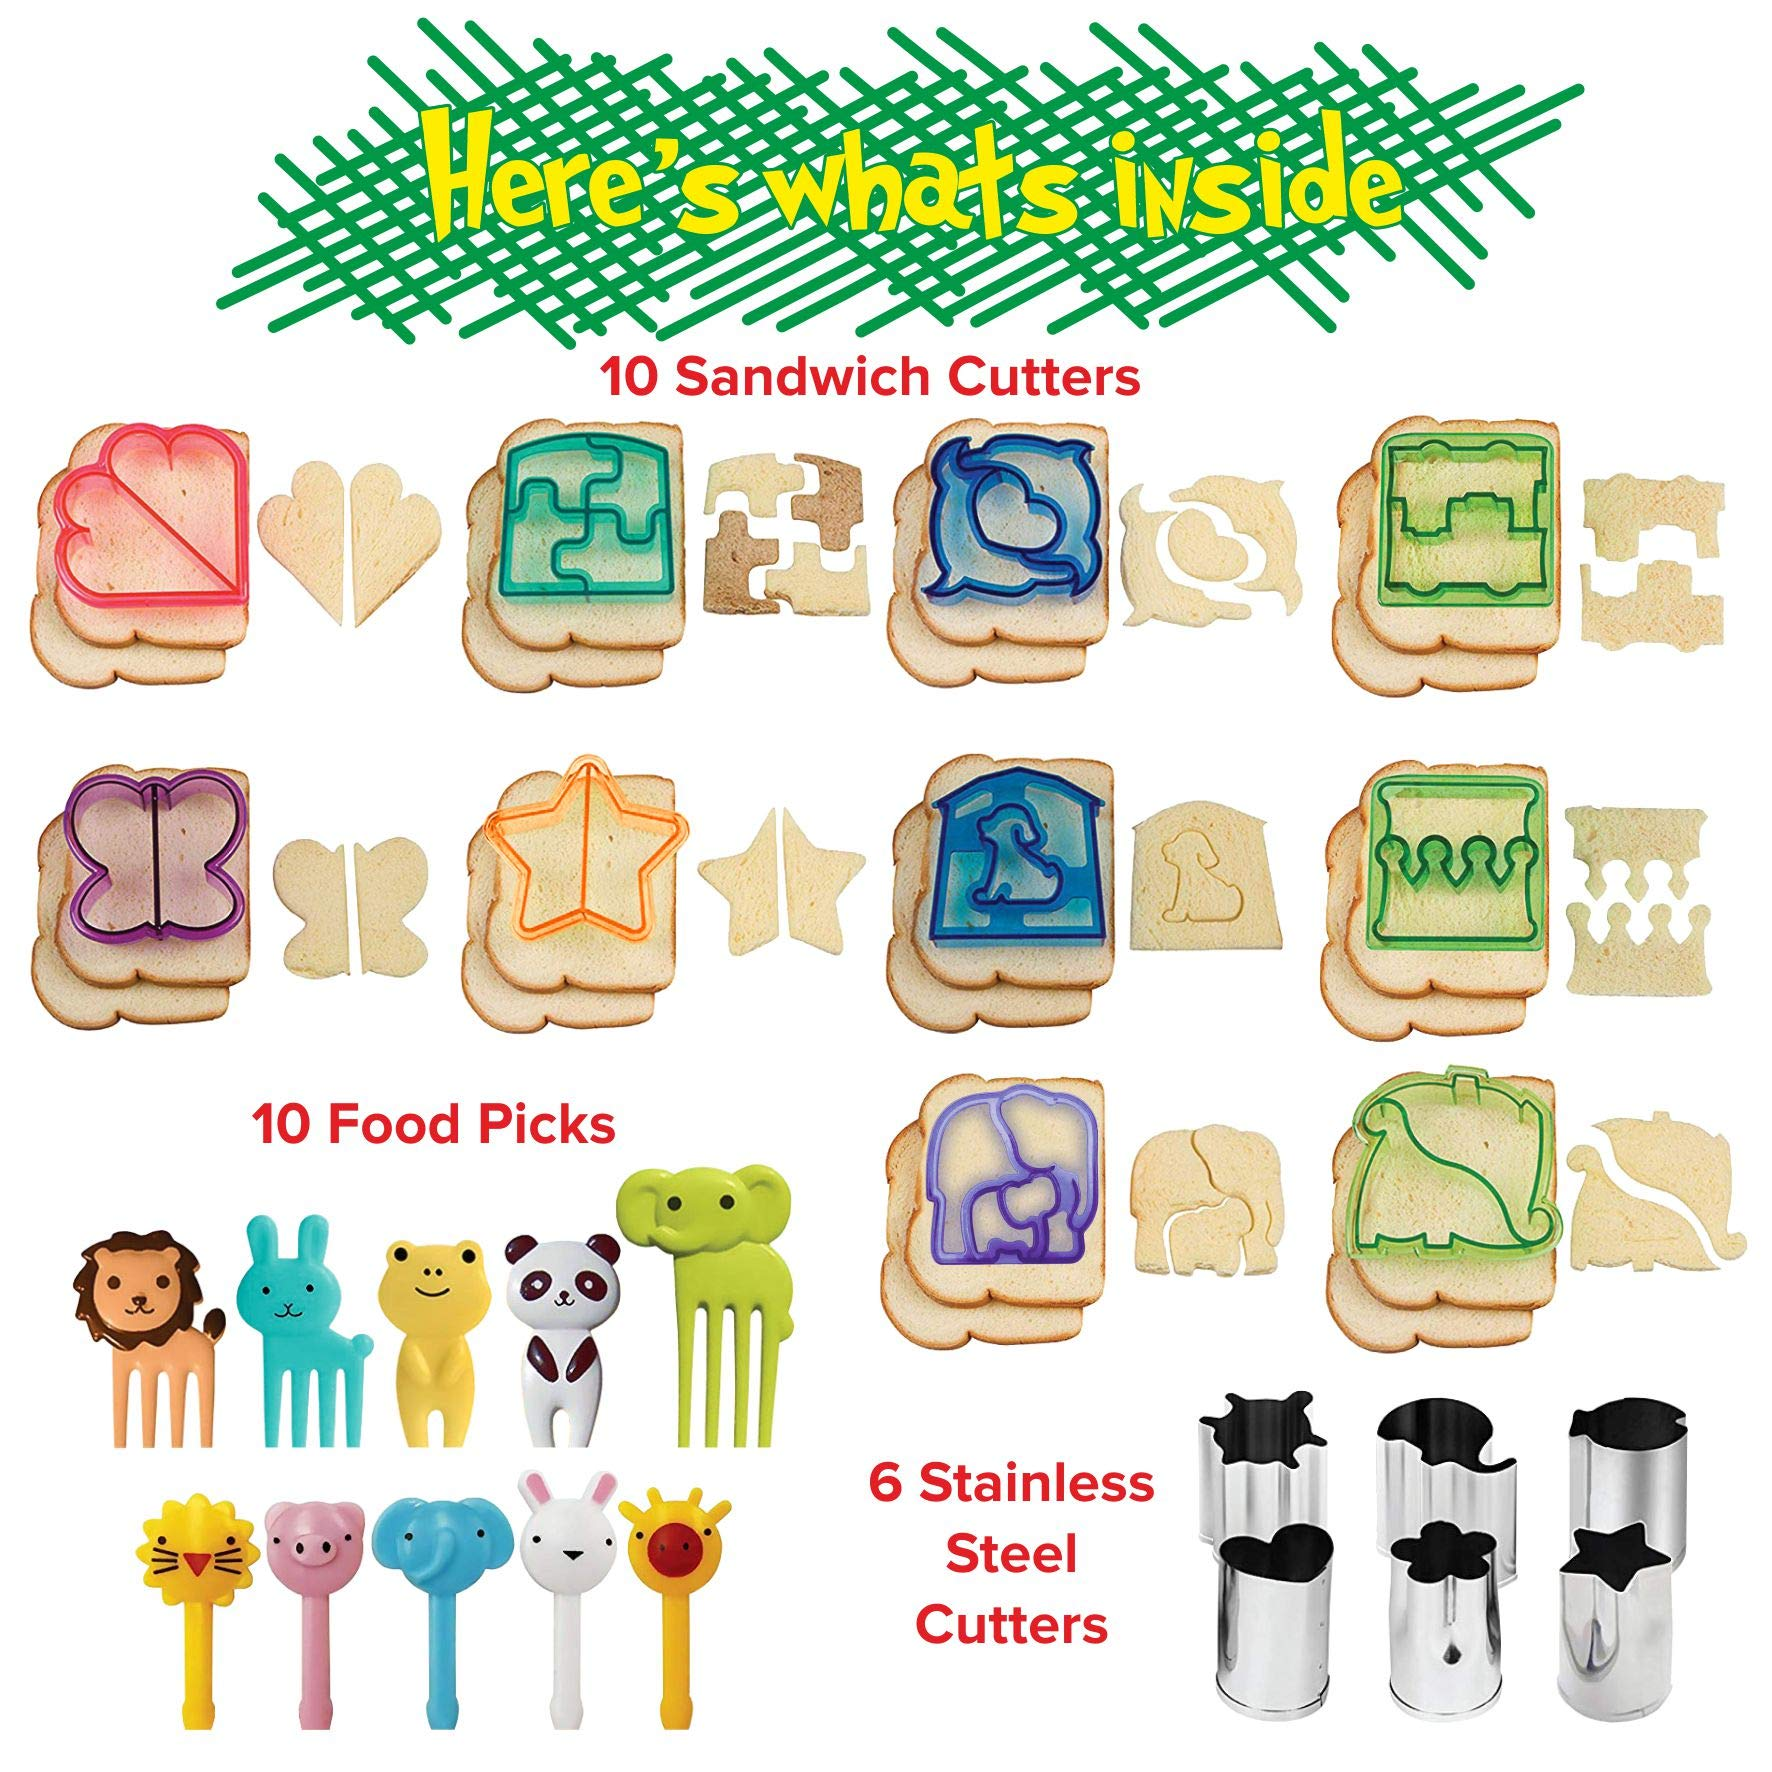 Sandwich Cutters for Kids | Funbite Food Cutter for Kids | Exciting and Innovative | Kids Friendly | 26 pieces set | Variant Sandwich Cutters | Vegetable and Cheese Stamps | Animal Shaped Food Picks | by Gordon's Sandwich Cutter (Image #2)